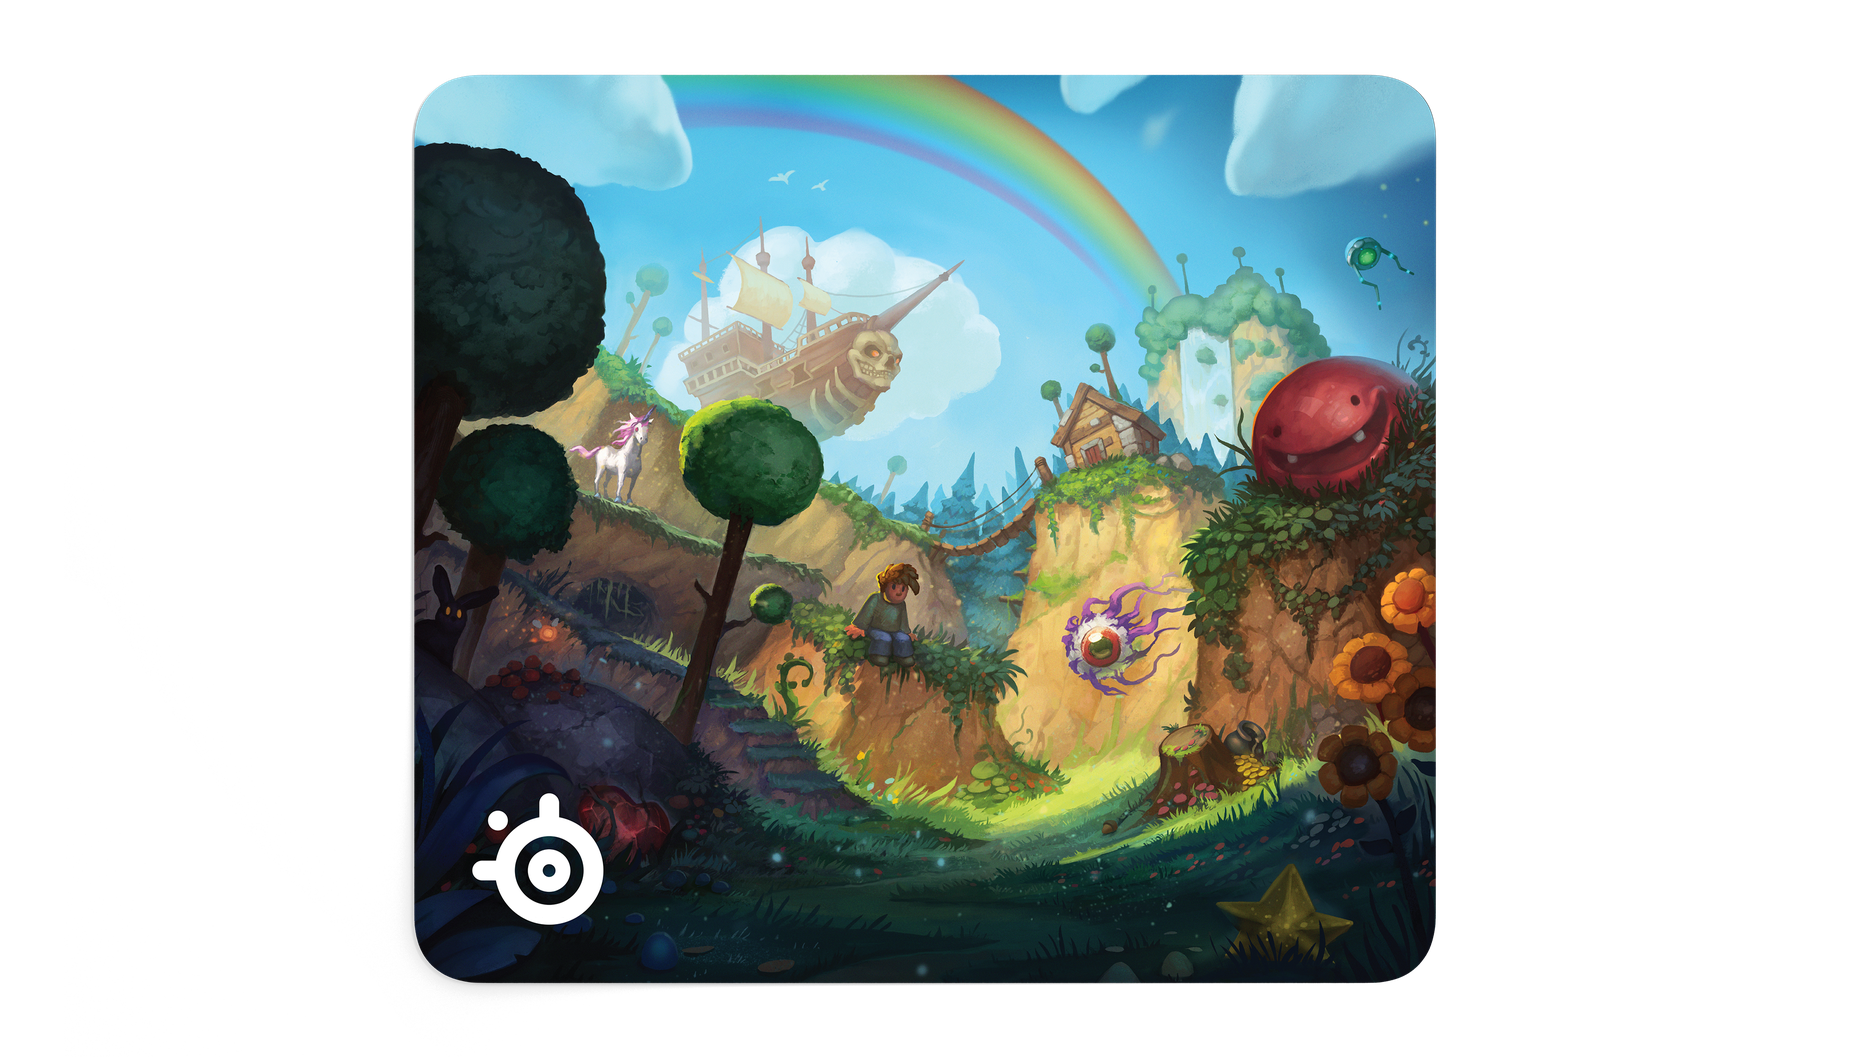 Frontal image of mousepad with whimsical creatures in a natural landscape.